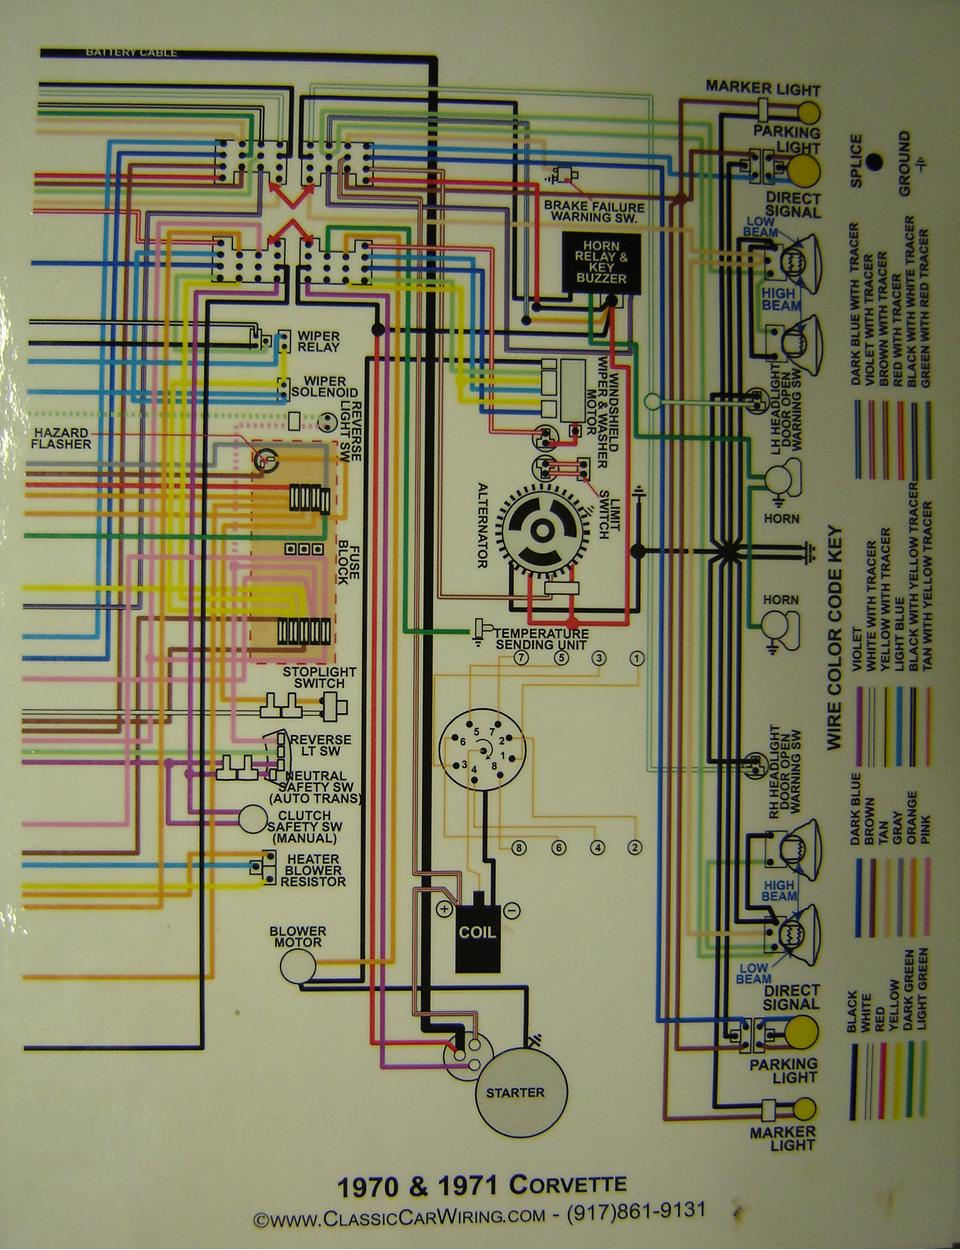 1970 71 corvette color wiring diagram B chevy diagrams 1968 corvette wiring diagram at readyjetset.co